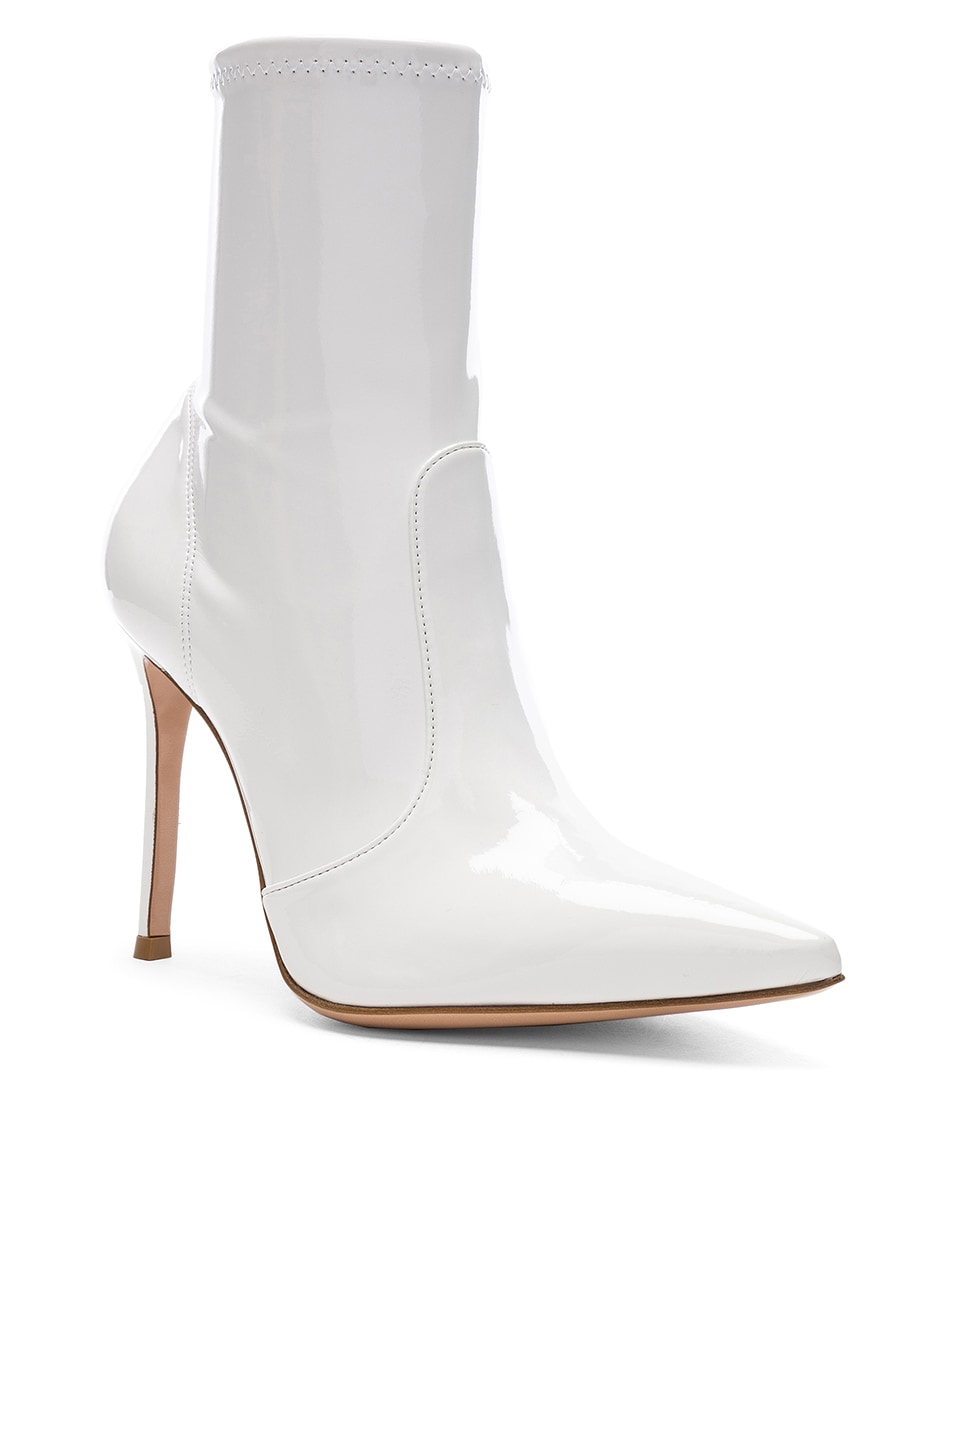 Image 2 of Gianvito Rossi Vinyl Imogen Ankle Boots in White